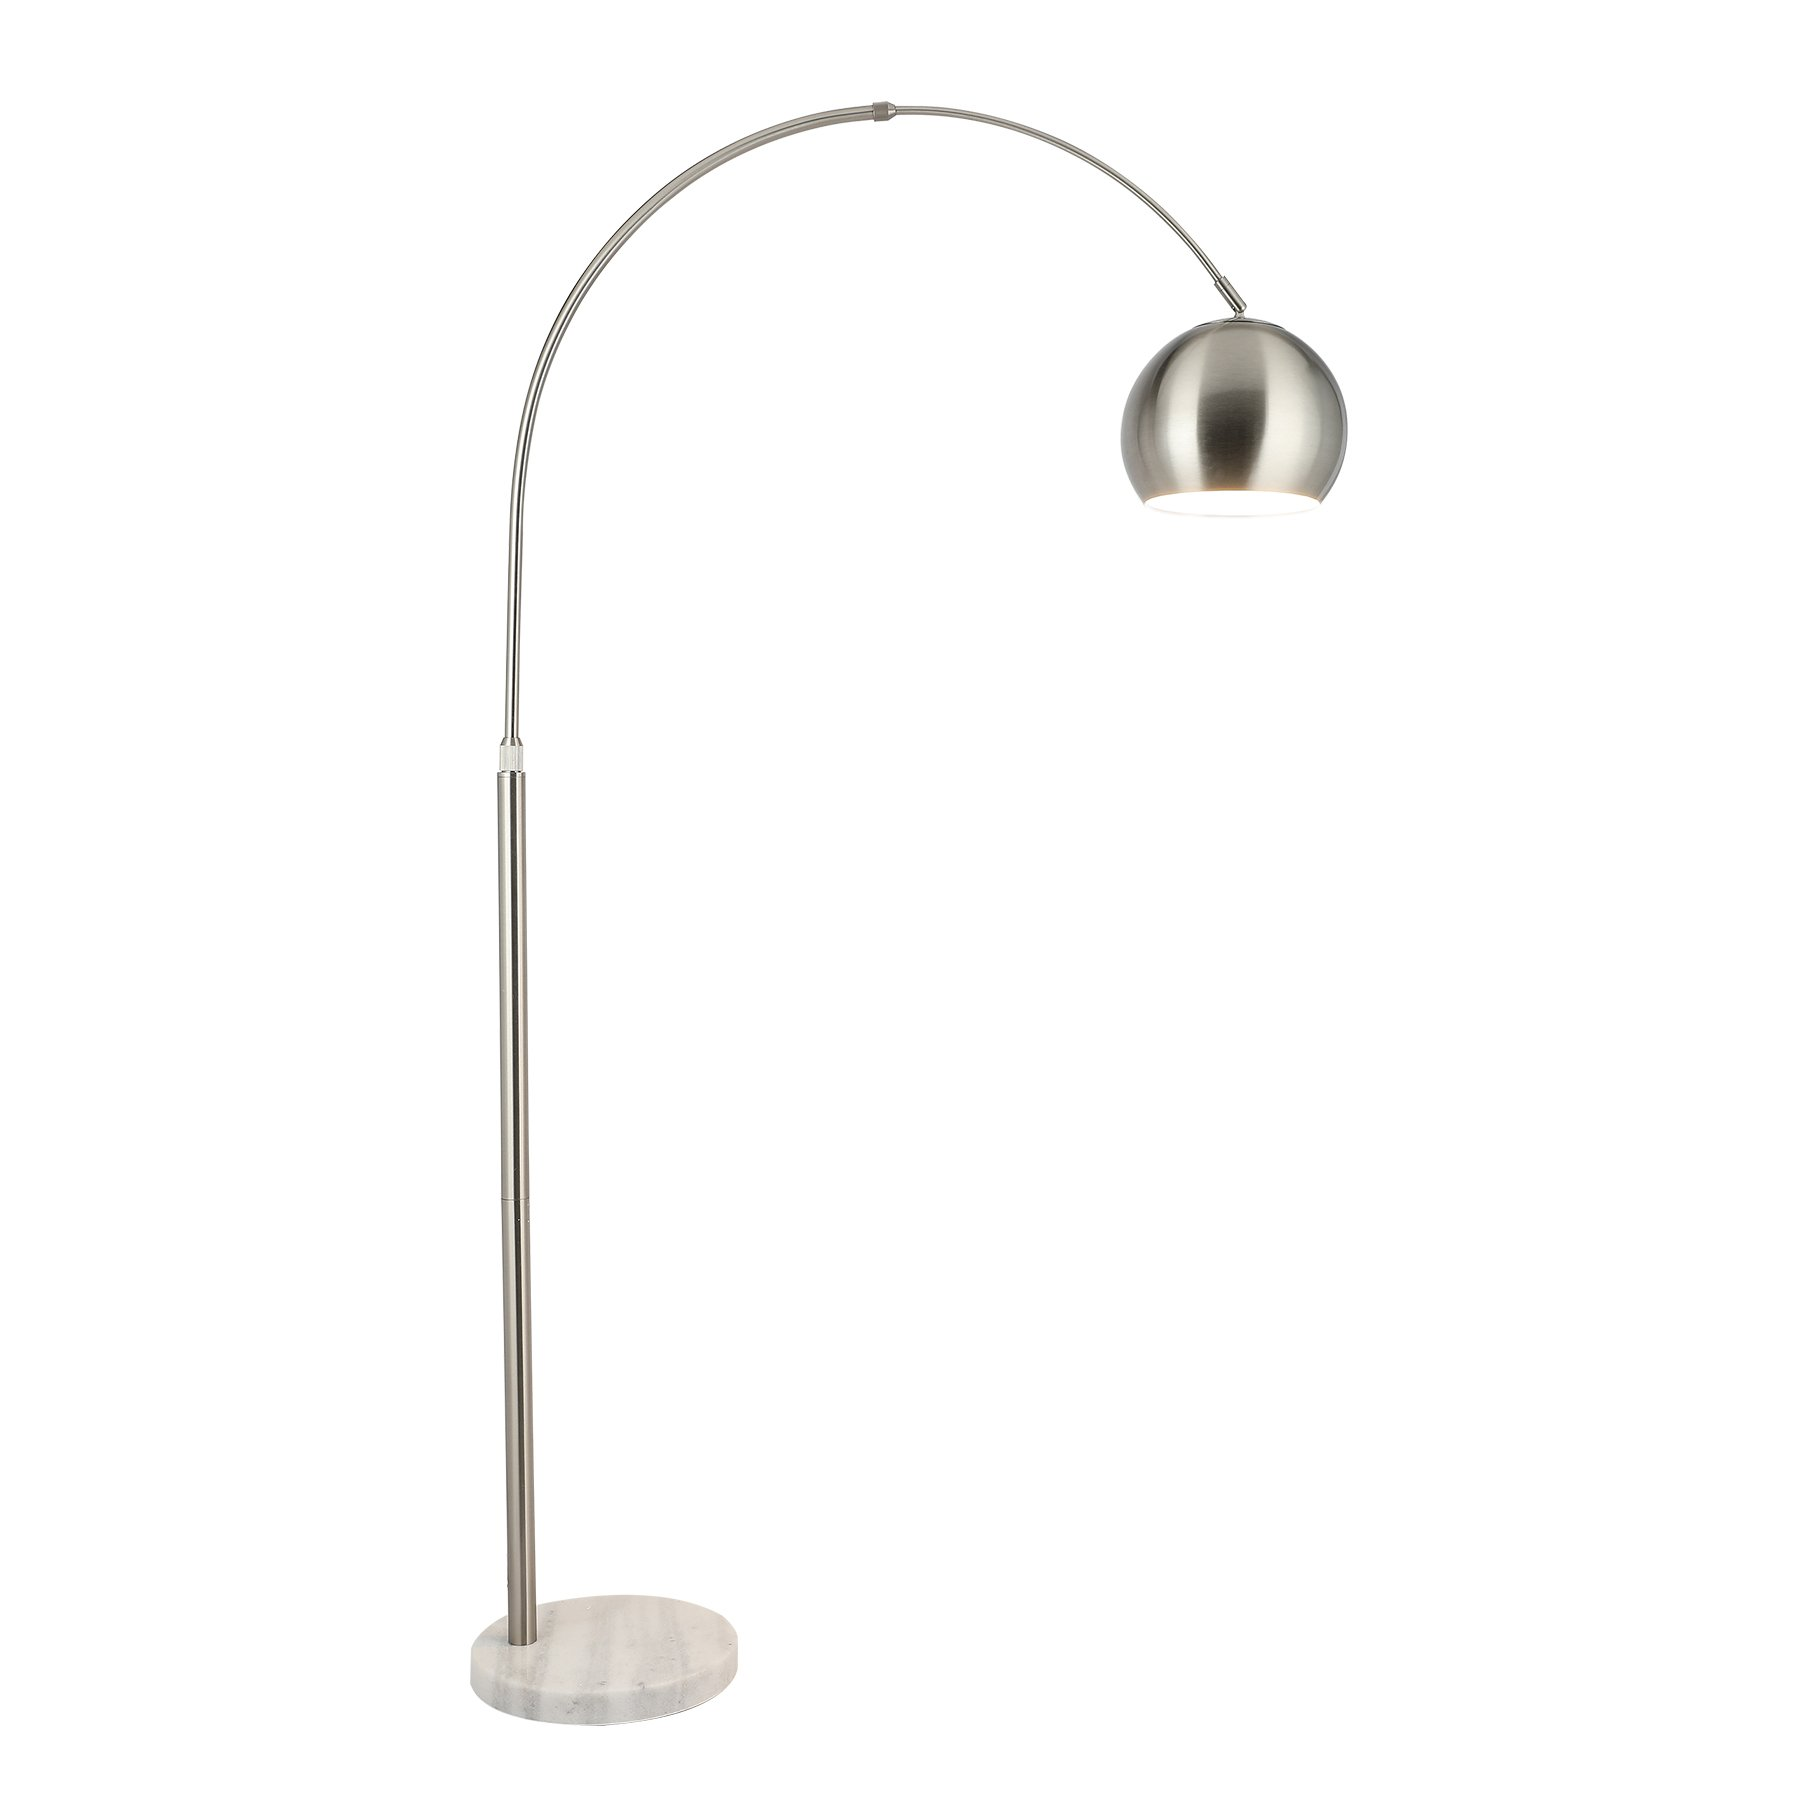 CO-Z Modern Arc Floor Lamp with 360° Rotatable Hanging Shade, Adjustable Nickel Standing Reading Light with Marble Base, Contemporary Arch Metal Pole Lamp with LED Bulb for Living Room Couch, 73''